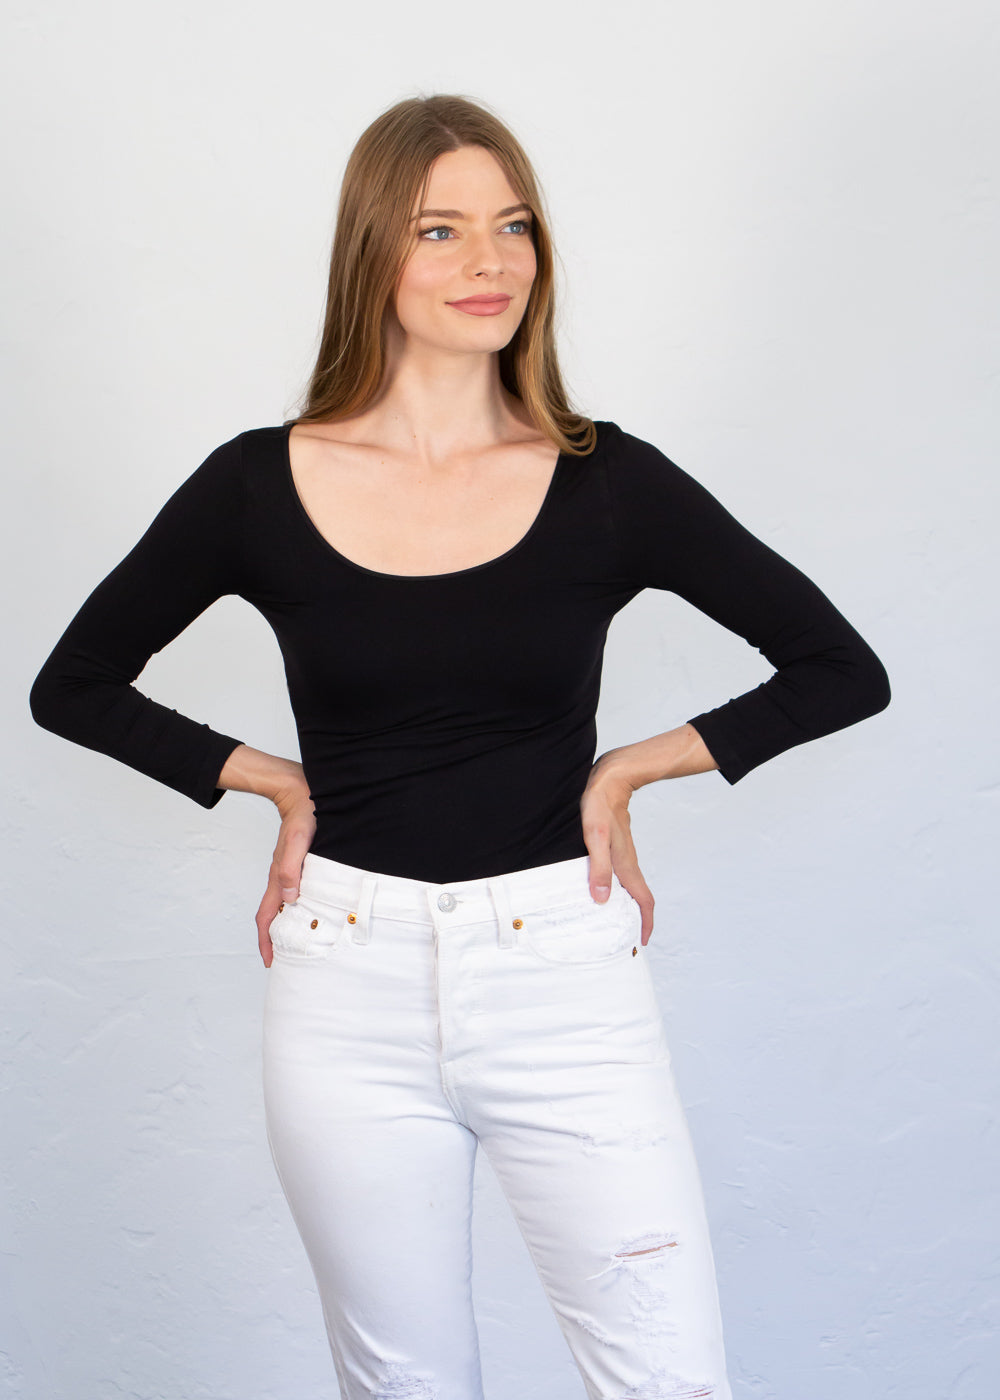 Classic Scoop 3/4 Sleeve Top - New Colors!